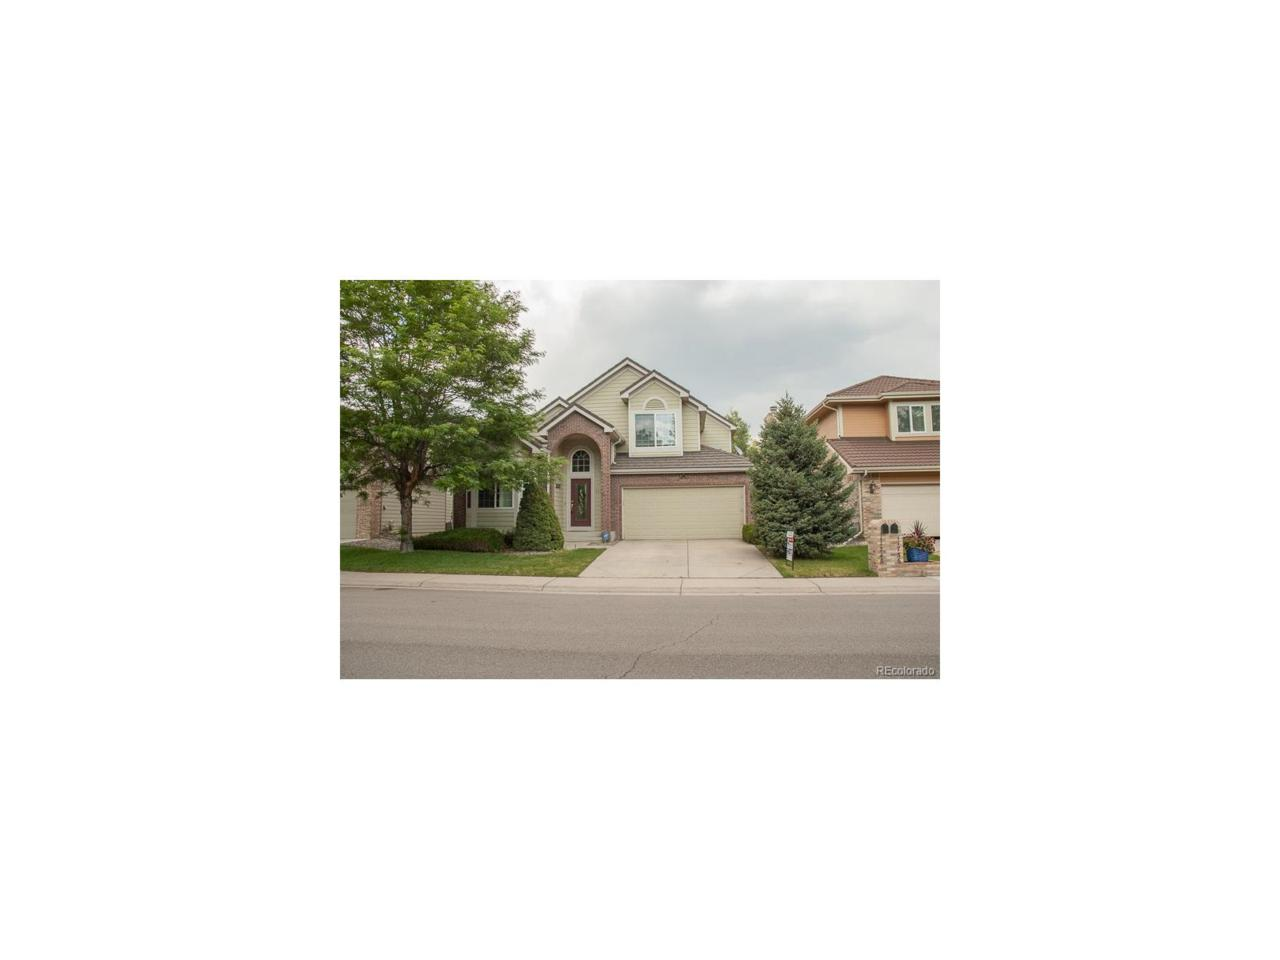 11746 Decatur Drive, Westminster, CO 80234 (MLS #4751124) :: 8z Real Estate